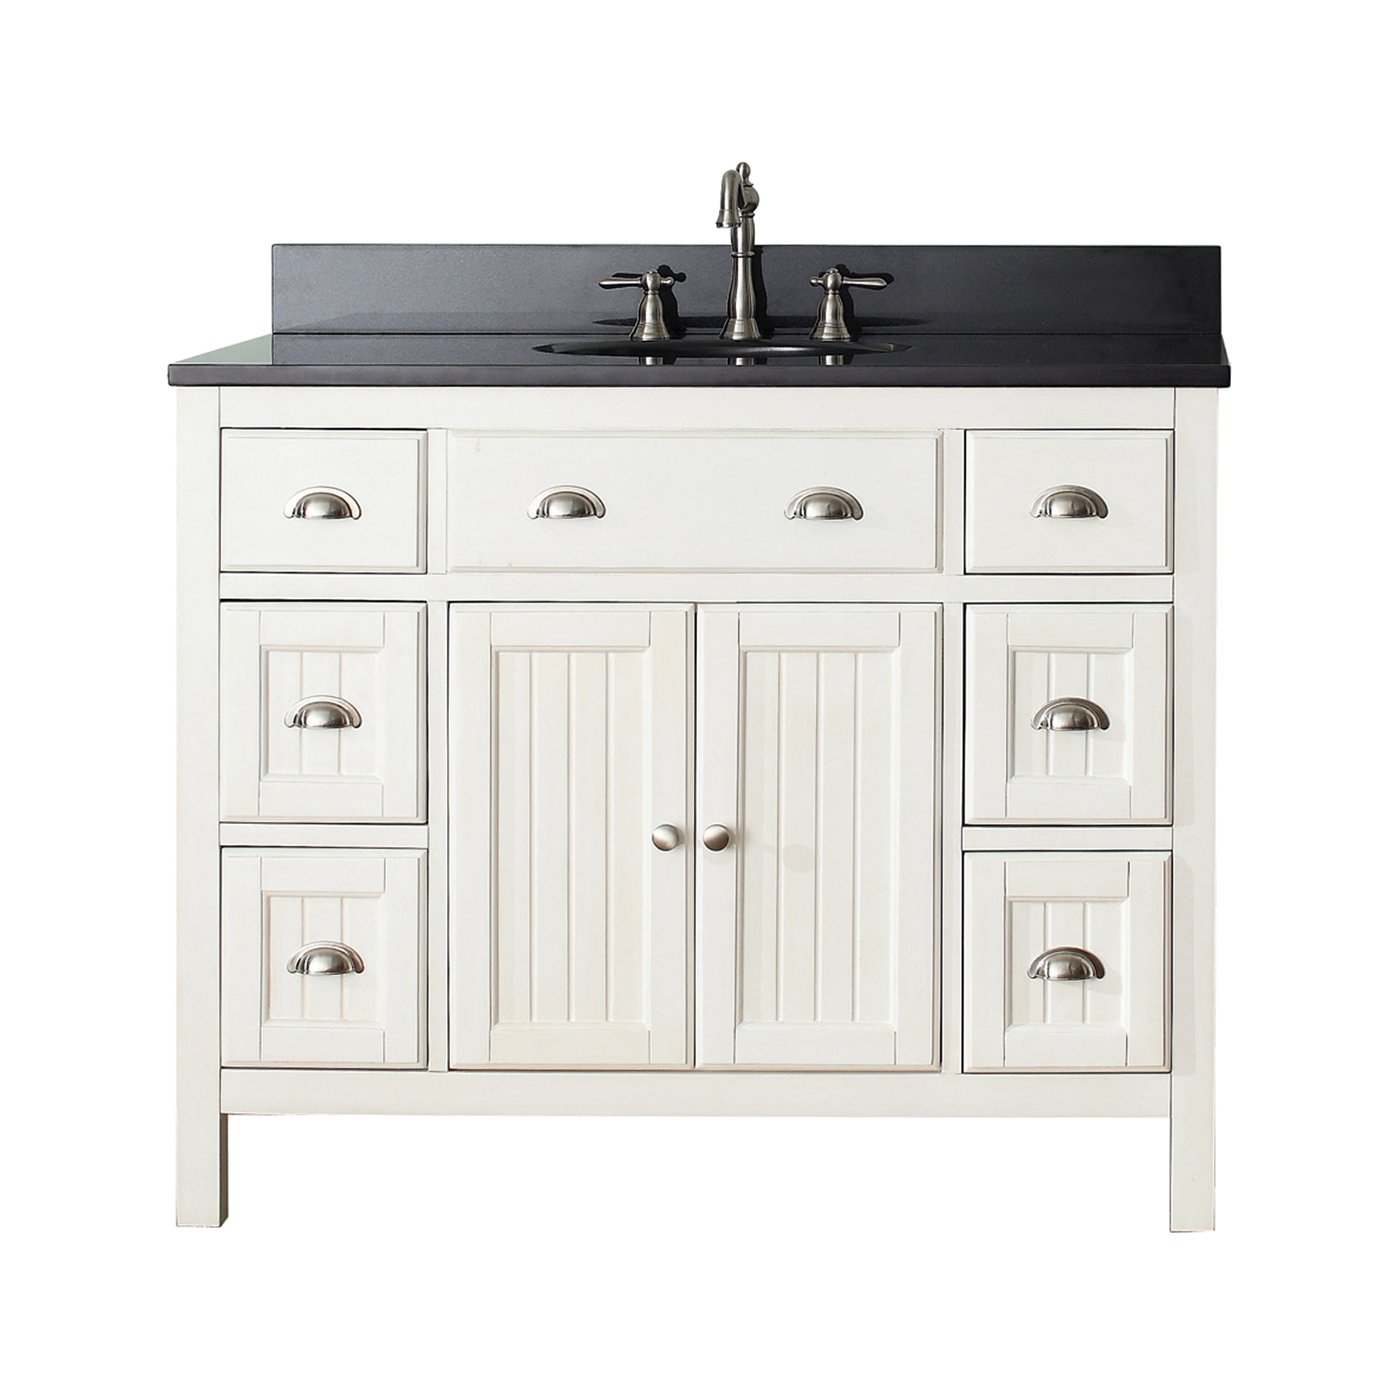 Glamorous Avanity Hamilton 42-In Bathroom Vanity Combo | Lowe's Canada with regard to 42 Inch Bathroom Vanity Combo